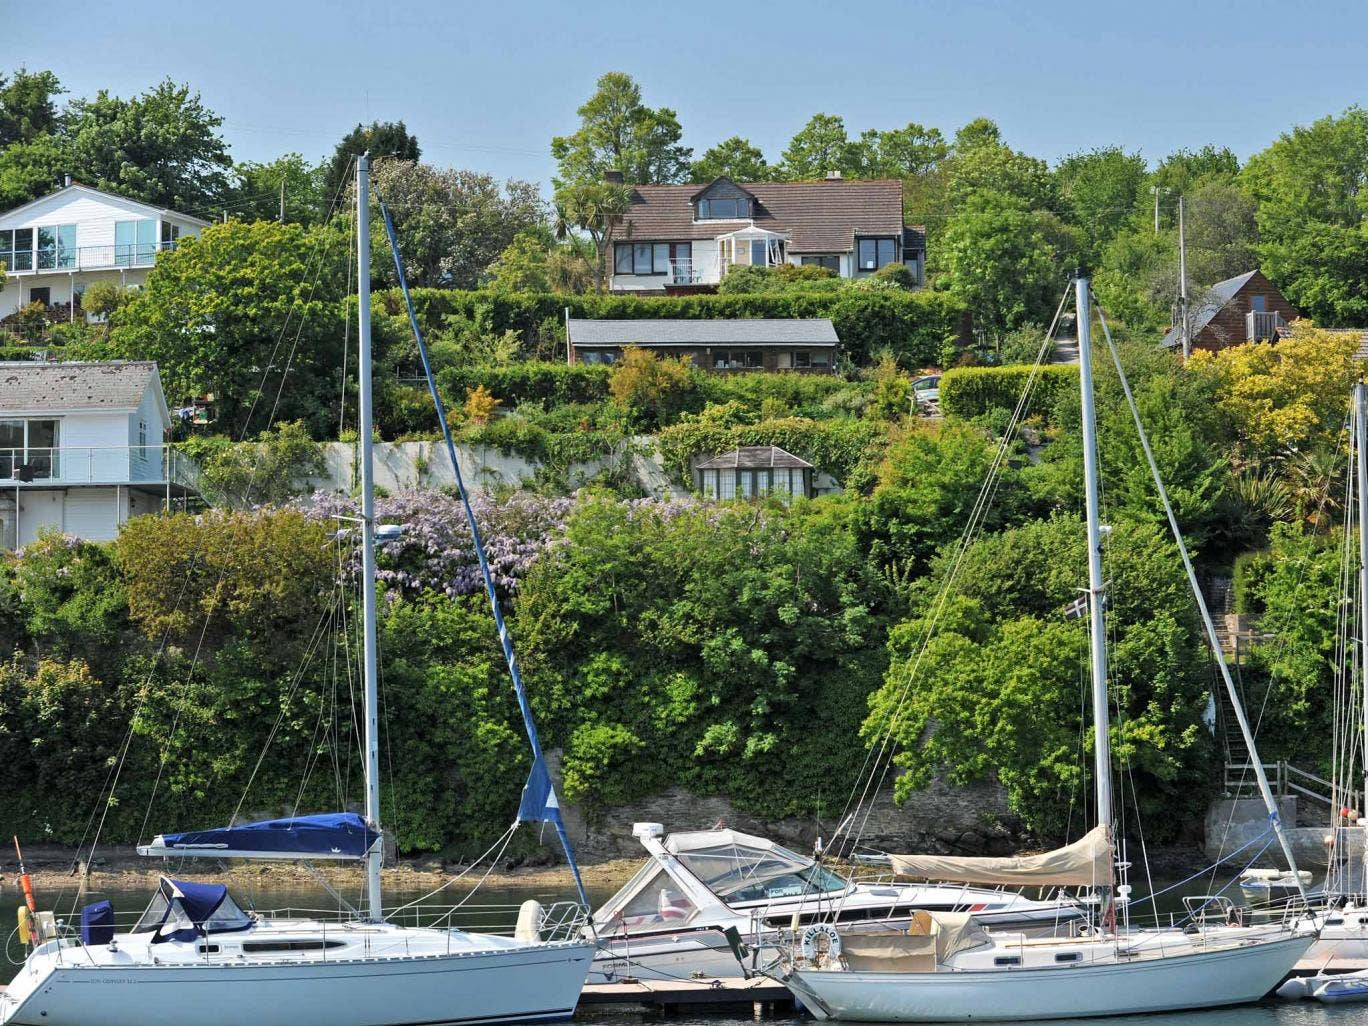 Roselaw, Mixtow, Nr Fowey, Cornwall. On with Knight Frank for offers in the region of £595,000